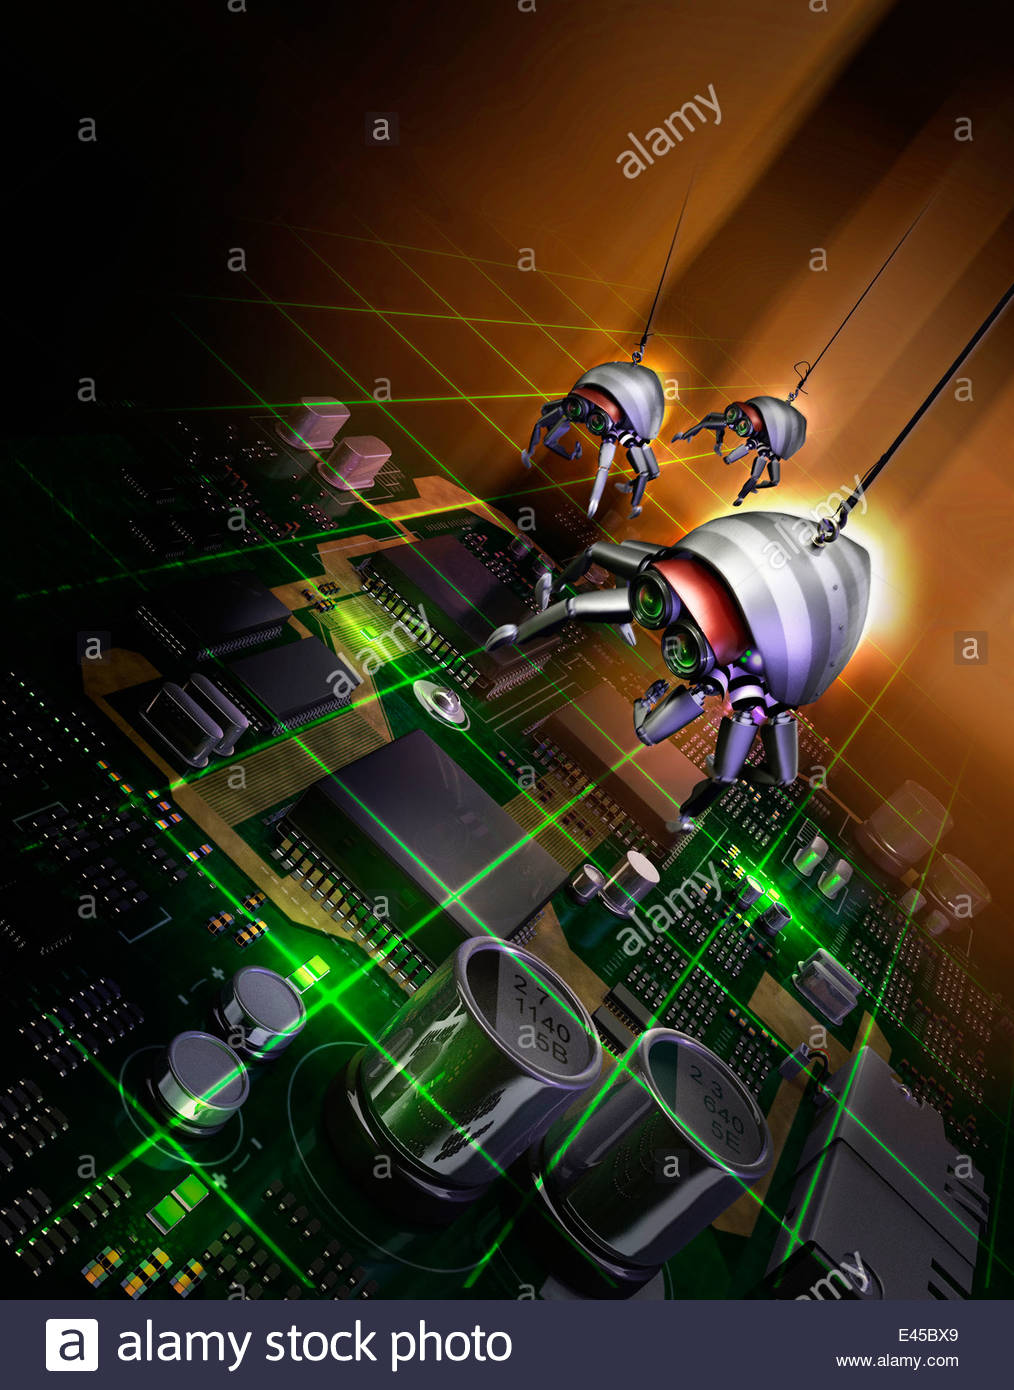 Robotic bugs above computer circuit board and laser beams - Stock Image